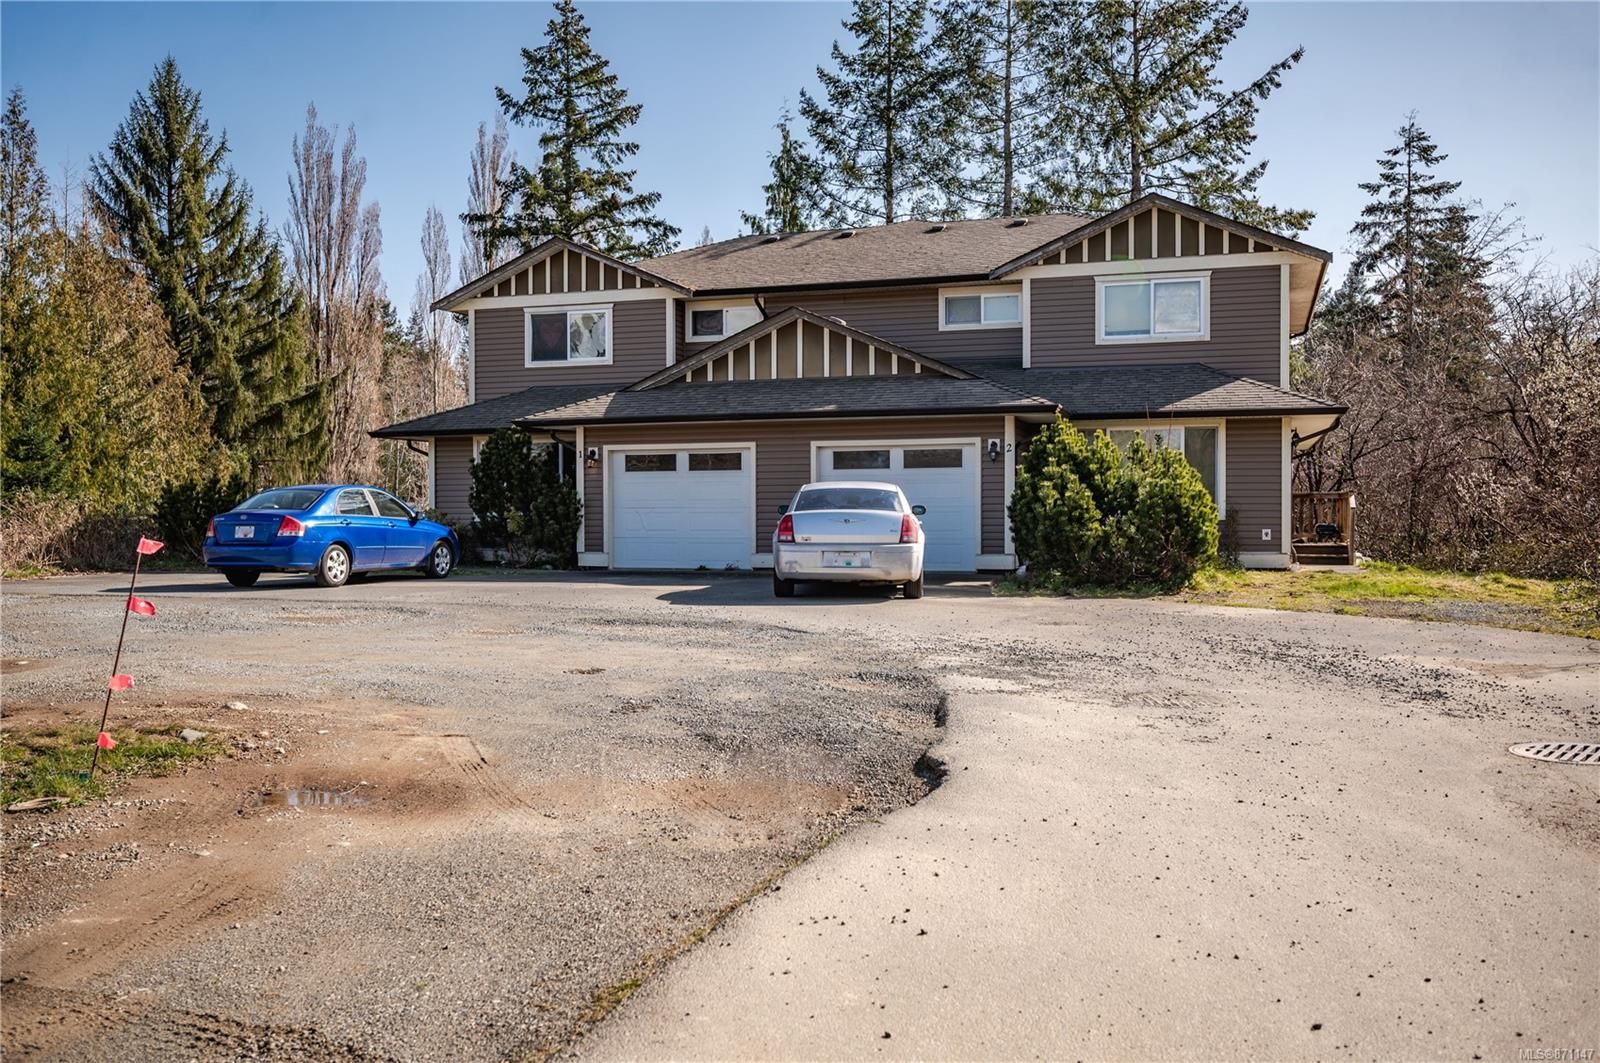 Main Photo: 325 Petersen Rd in : CR Campbell River West Full Duplex for sale (Campbell River)  : MLS®# 871147